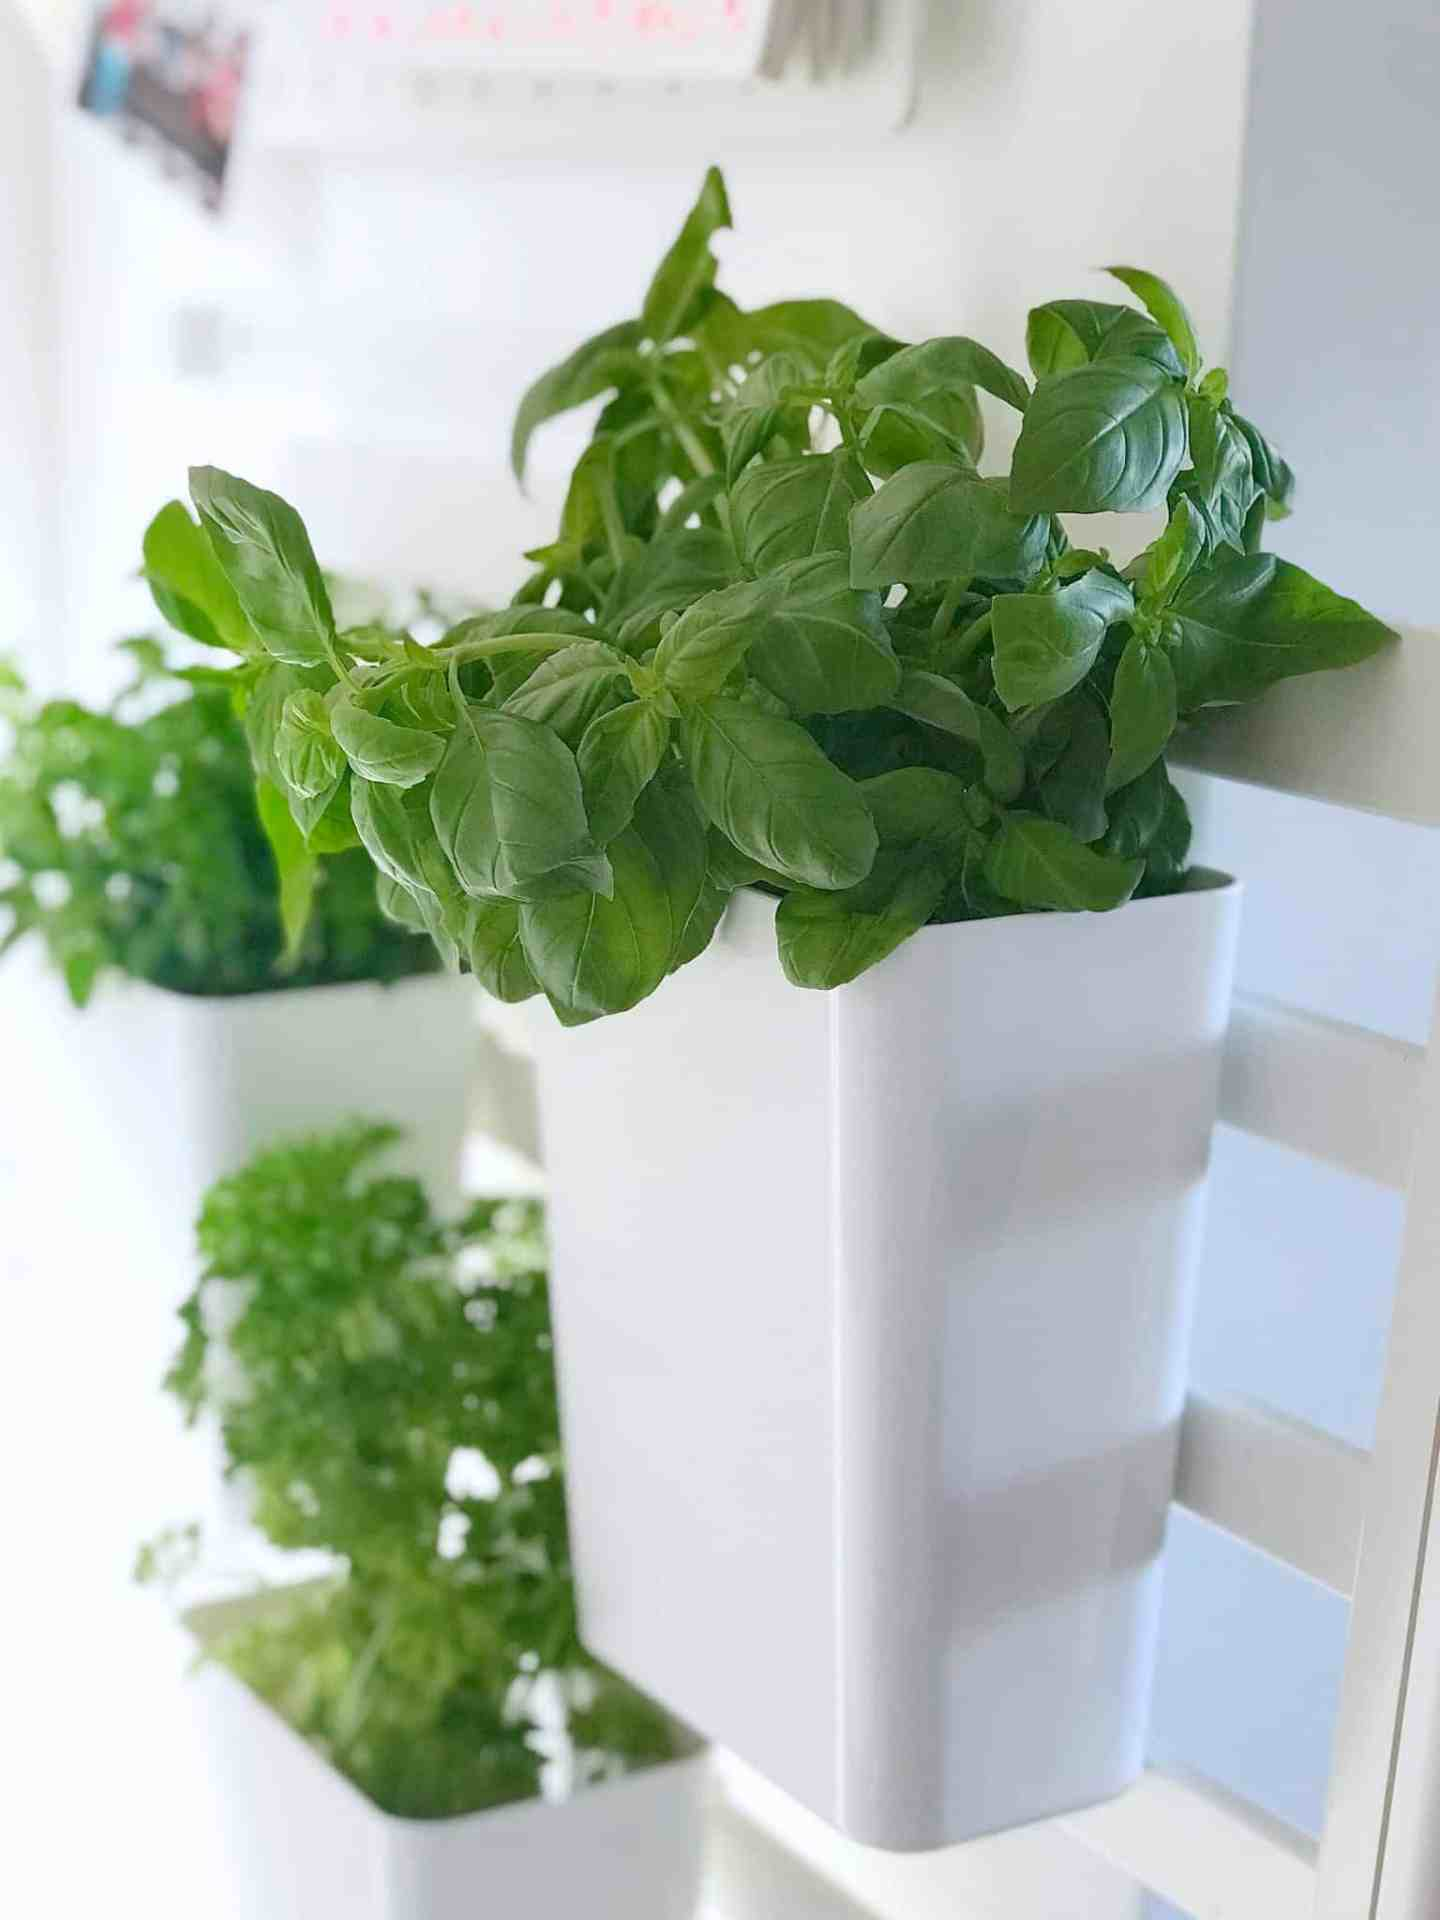 How to make an indoor salad and herb garden